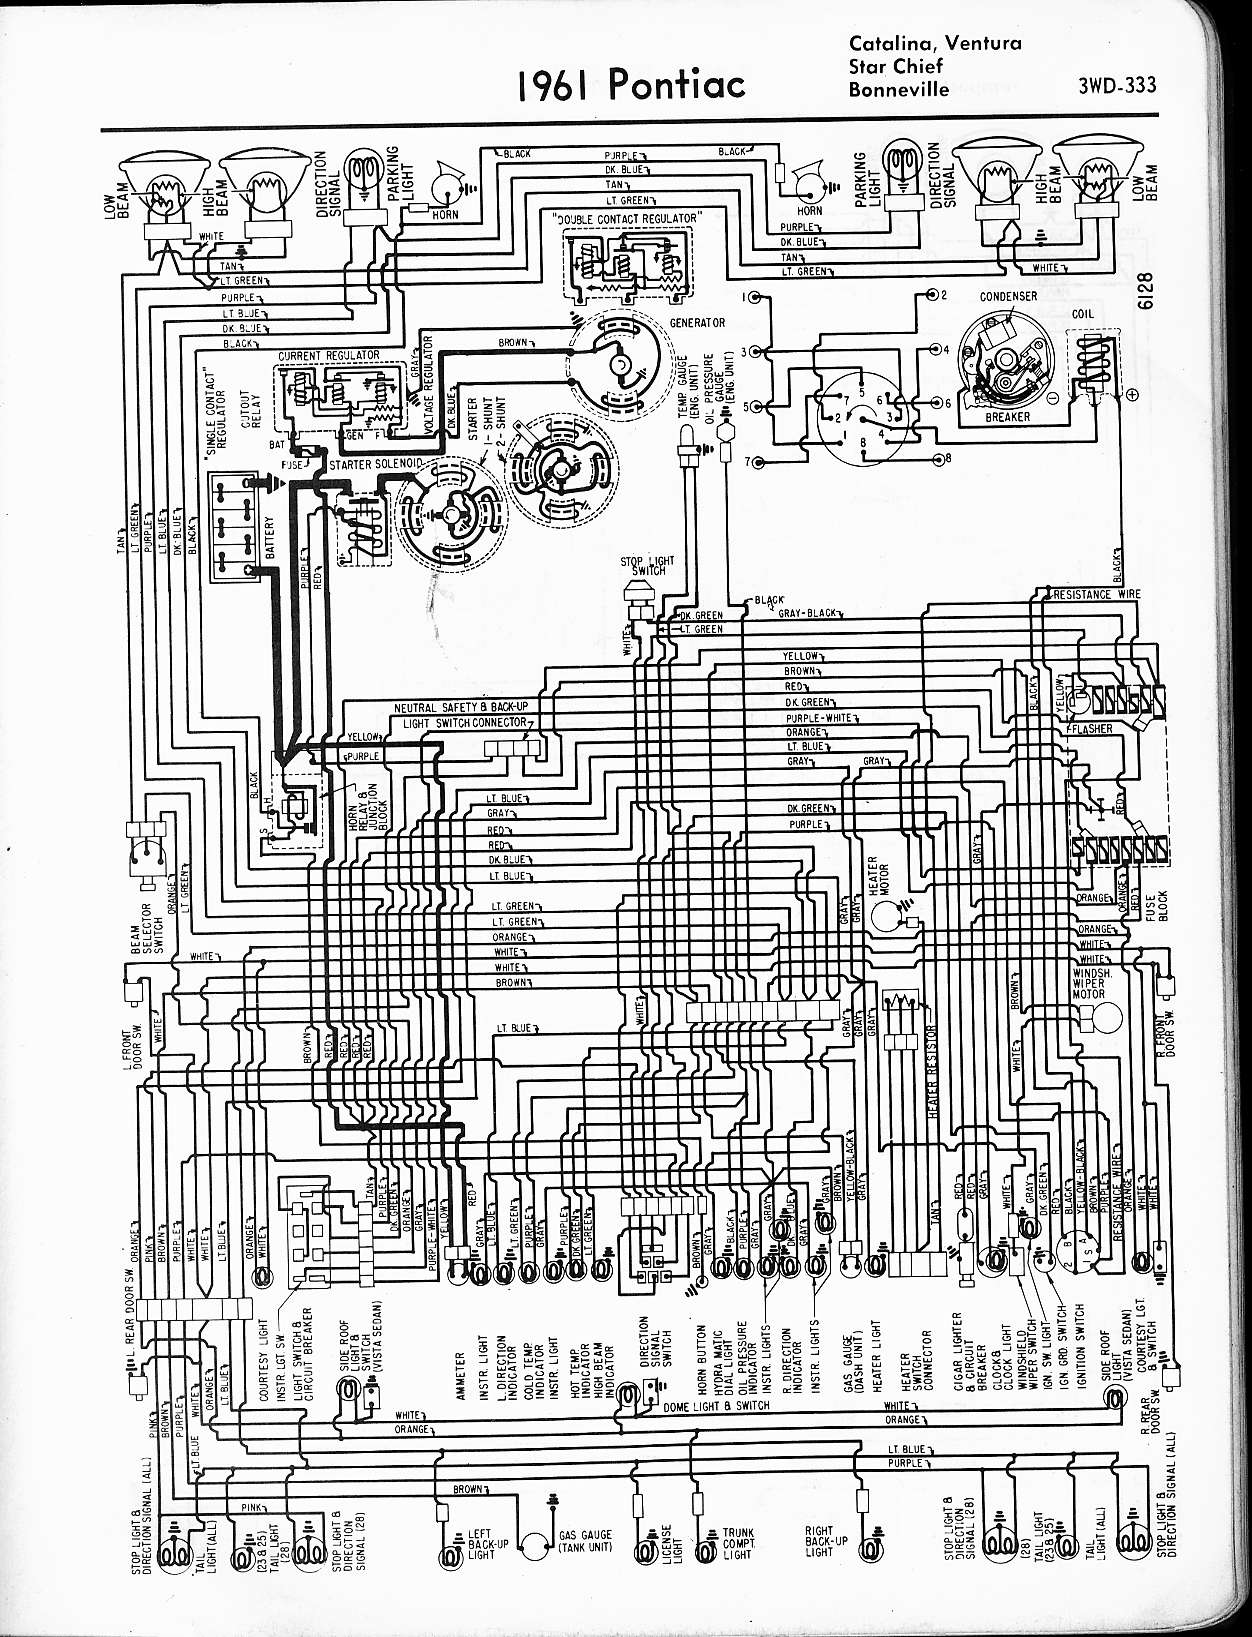 Wallace Racing Wiring Diagrams 4 Pin Regulator Diagram 1961 Catalina Star Chief Ventura Bonneville